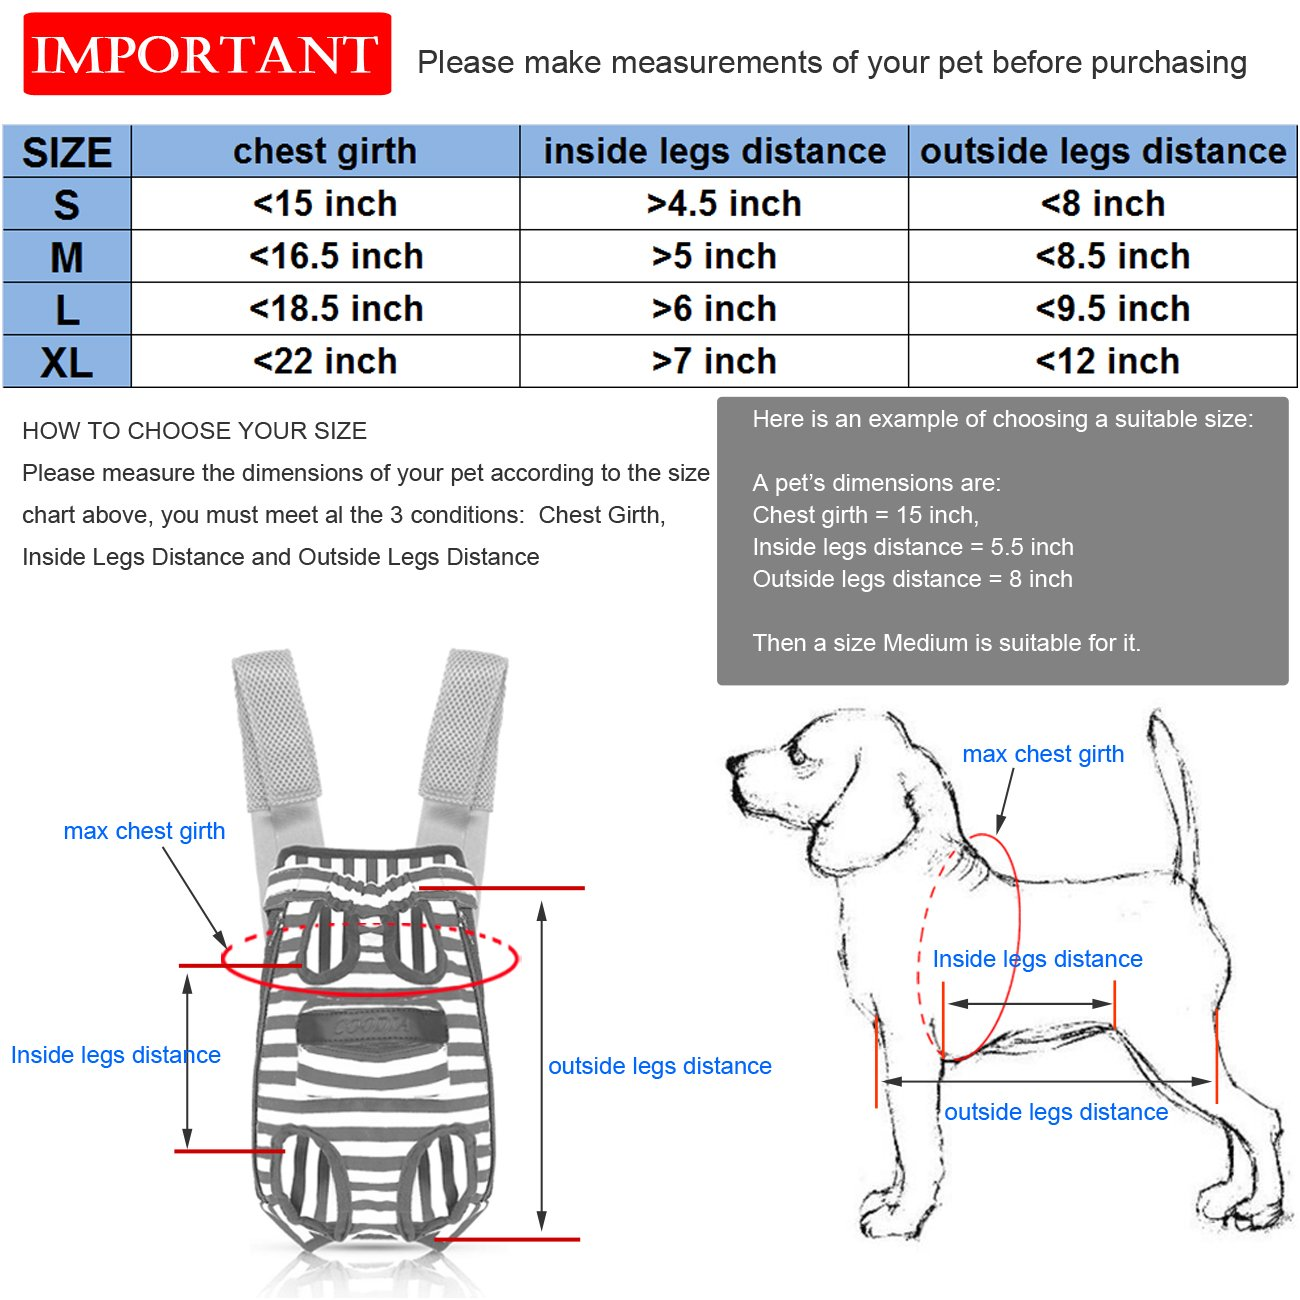 COODIA Legs Out Front Pet Dog Carrier Front Chest Backpack Pet Cat Puppy Tote Holder Bag Sling Outdoor (S) by COODIA (Image #5)